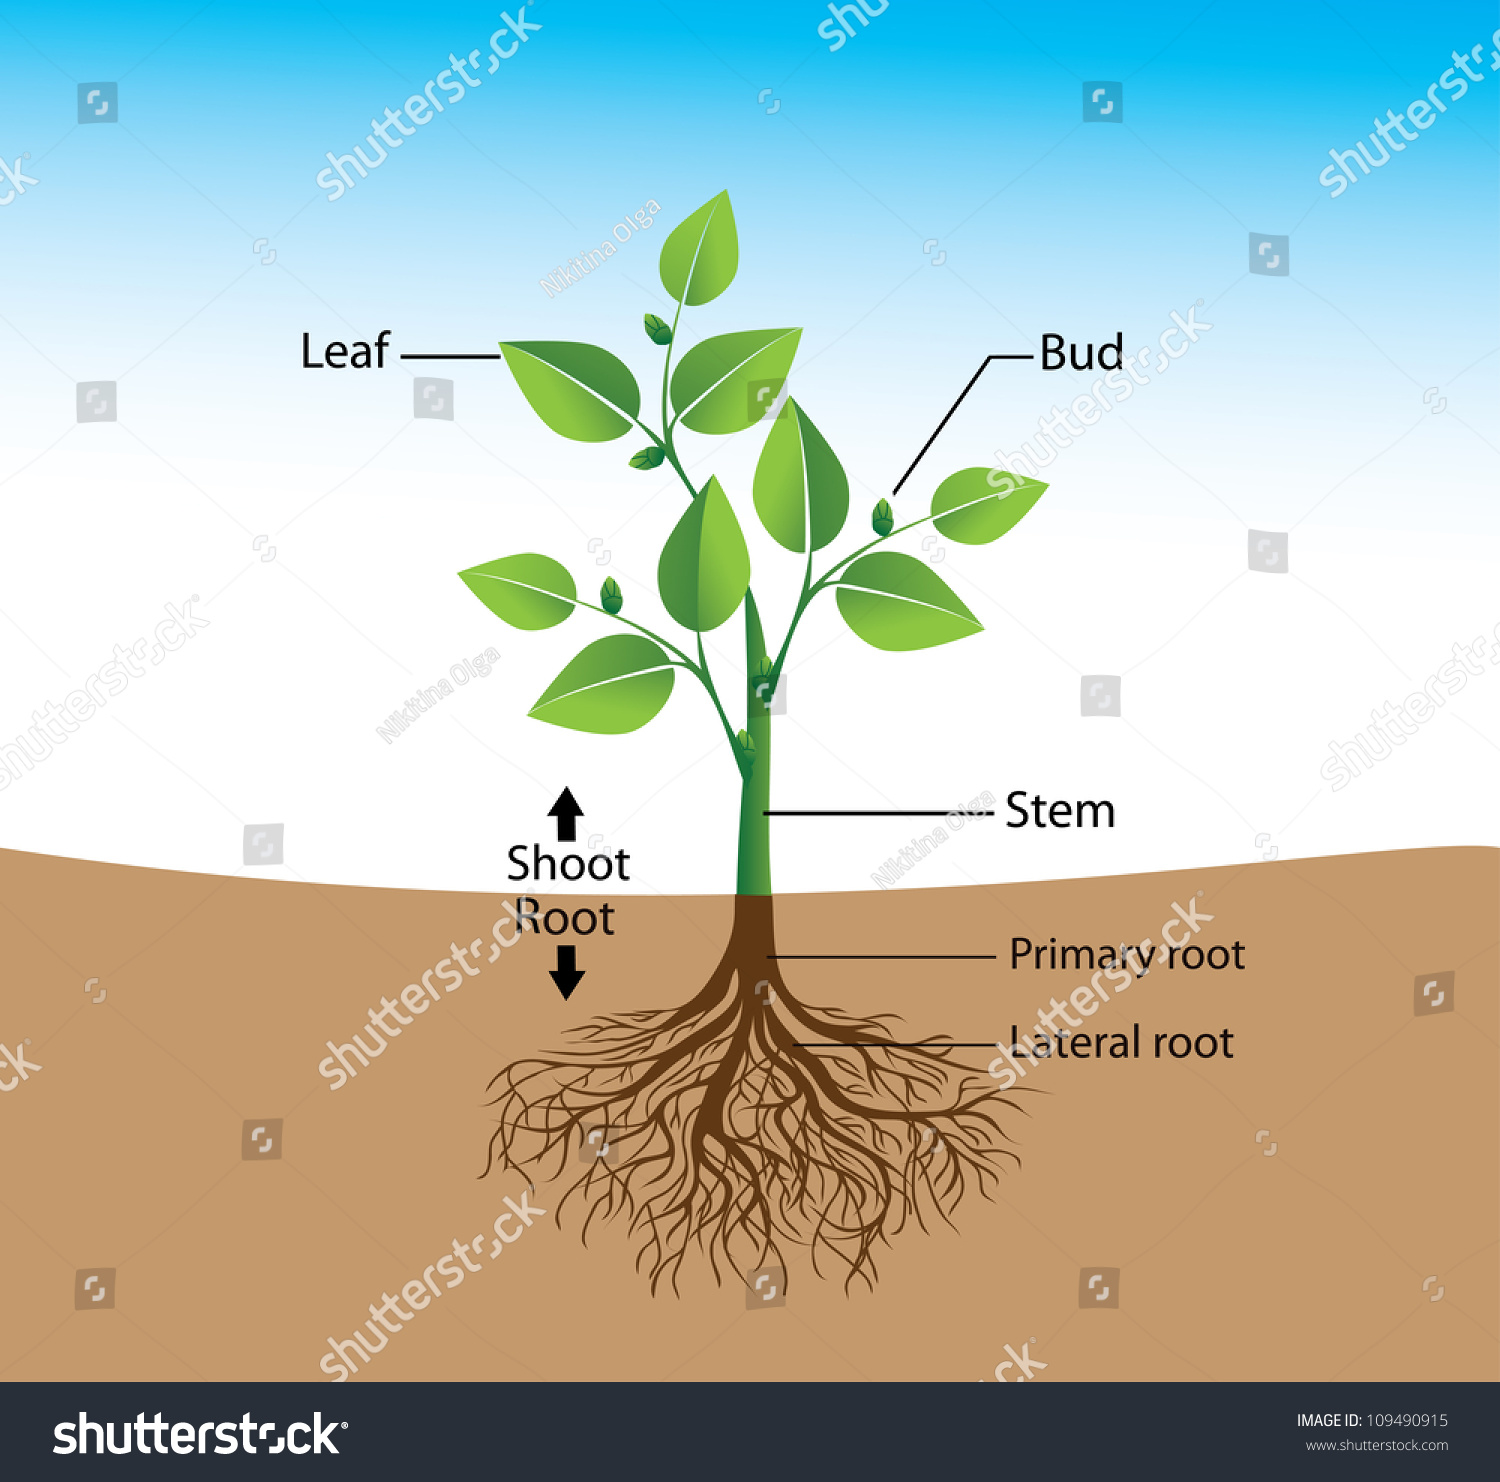 Structure The Plant A Visual Aid For Training Stock Vector Illustration 1